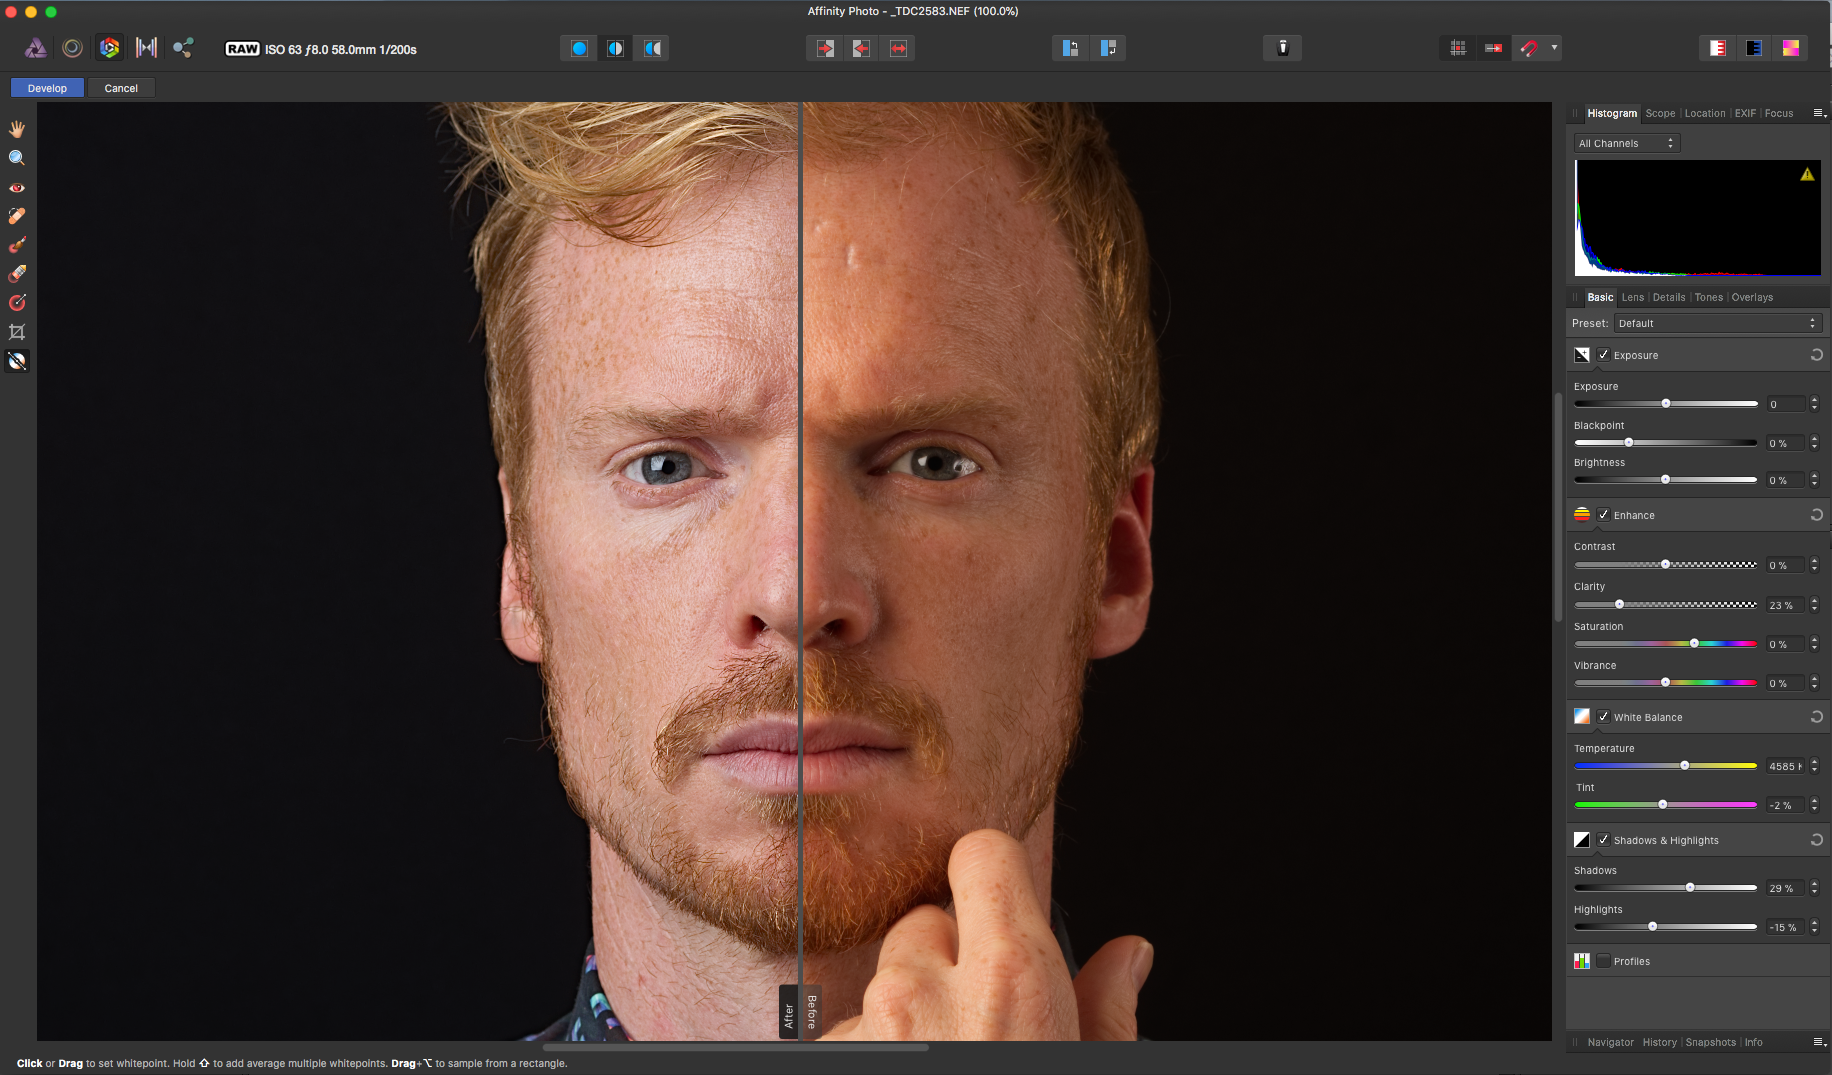 affinity photo screenshot 3 develop persona image view 2.png